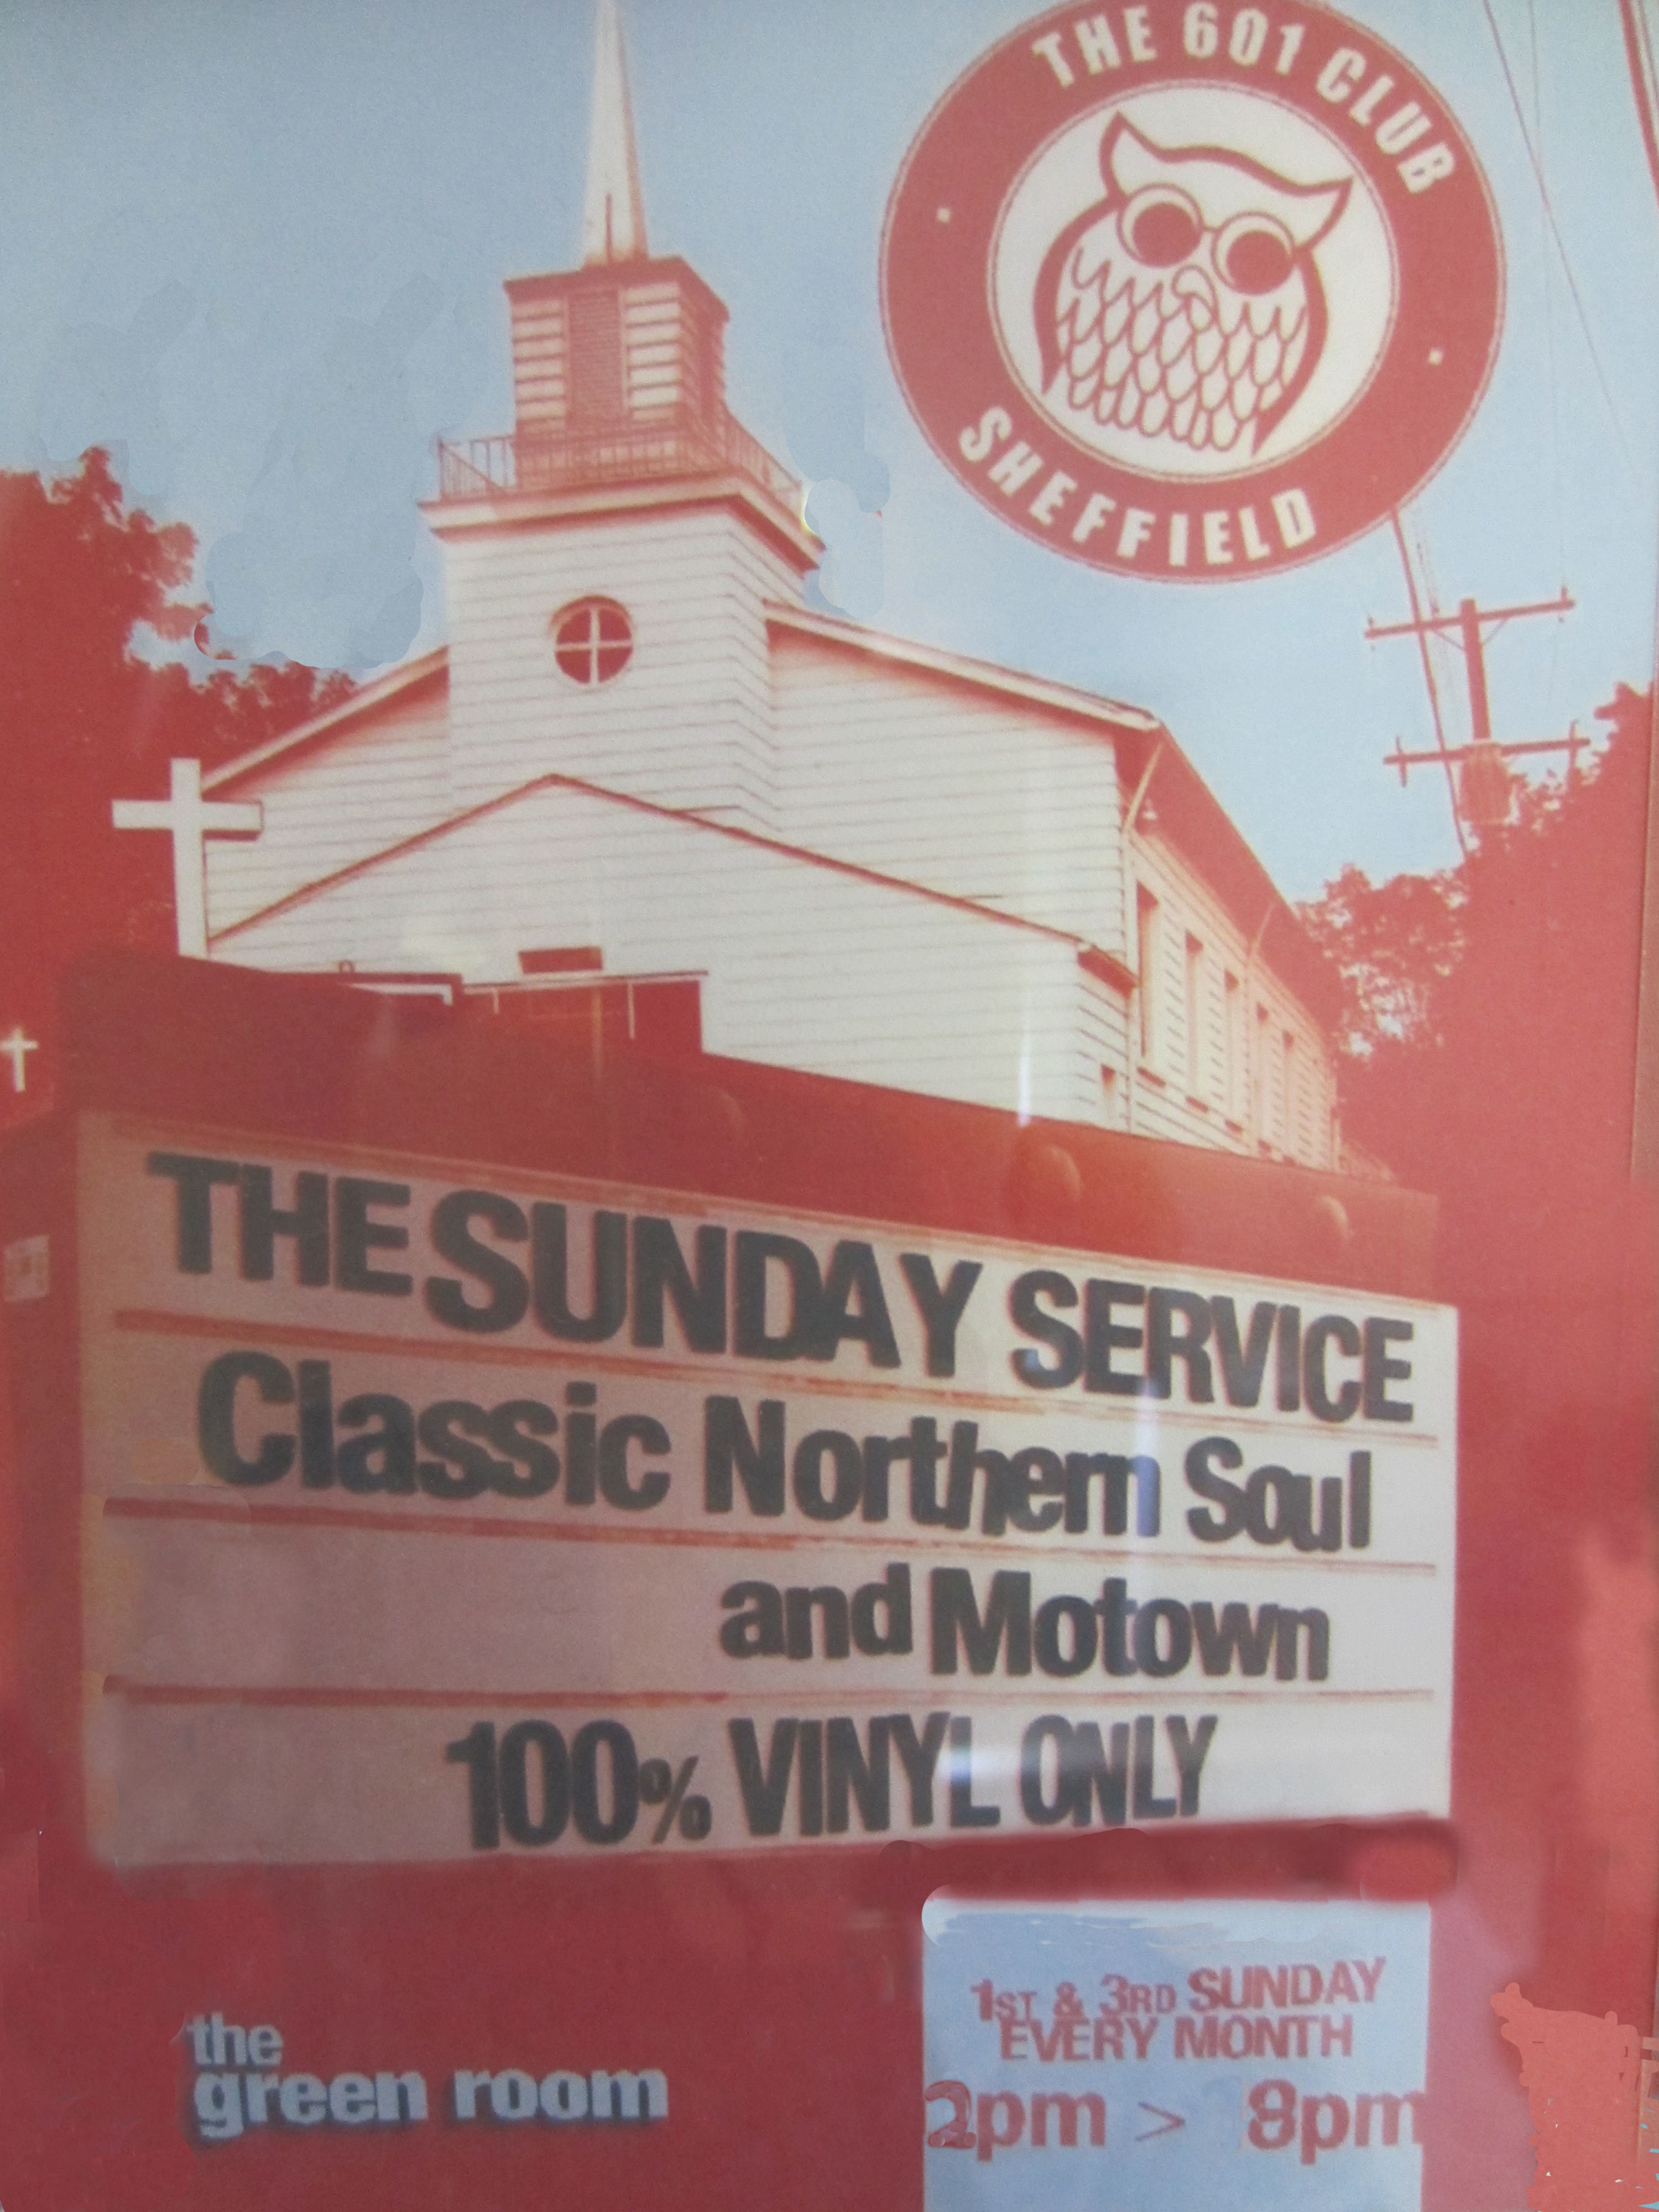 601 Sunday Service At The Green Room Sheffield flyer